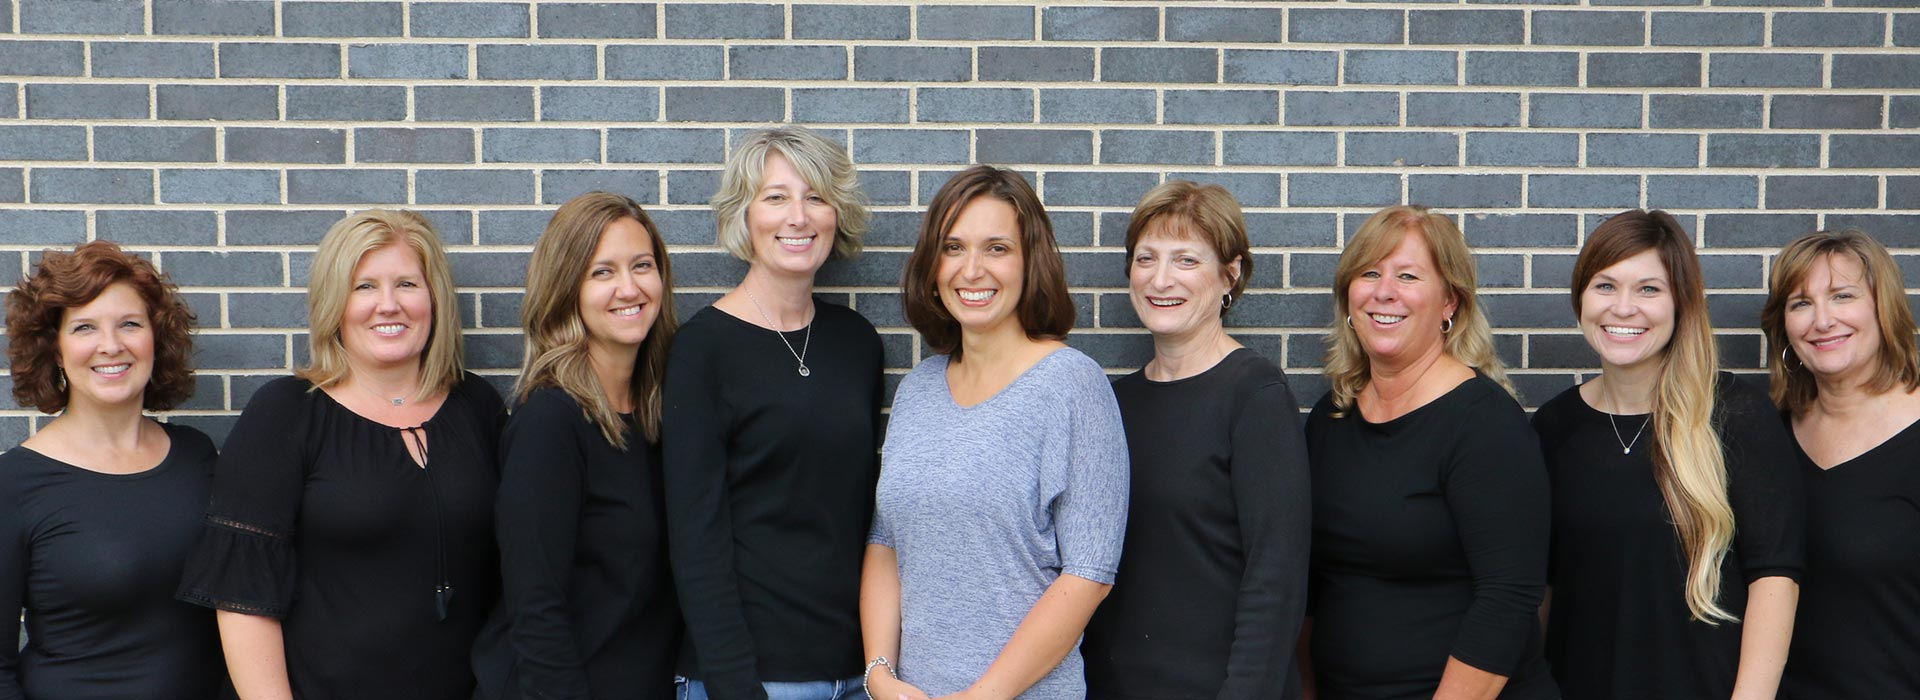 Staff Honey Orthodontics in Gurnee, IL